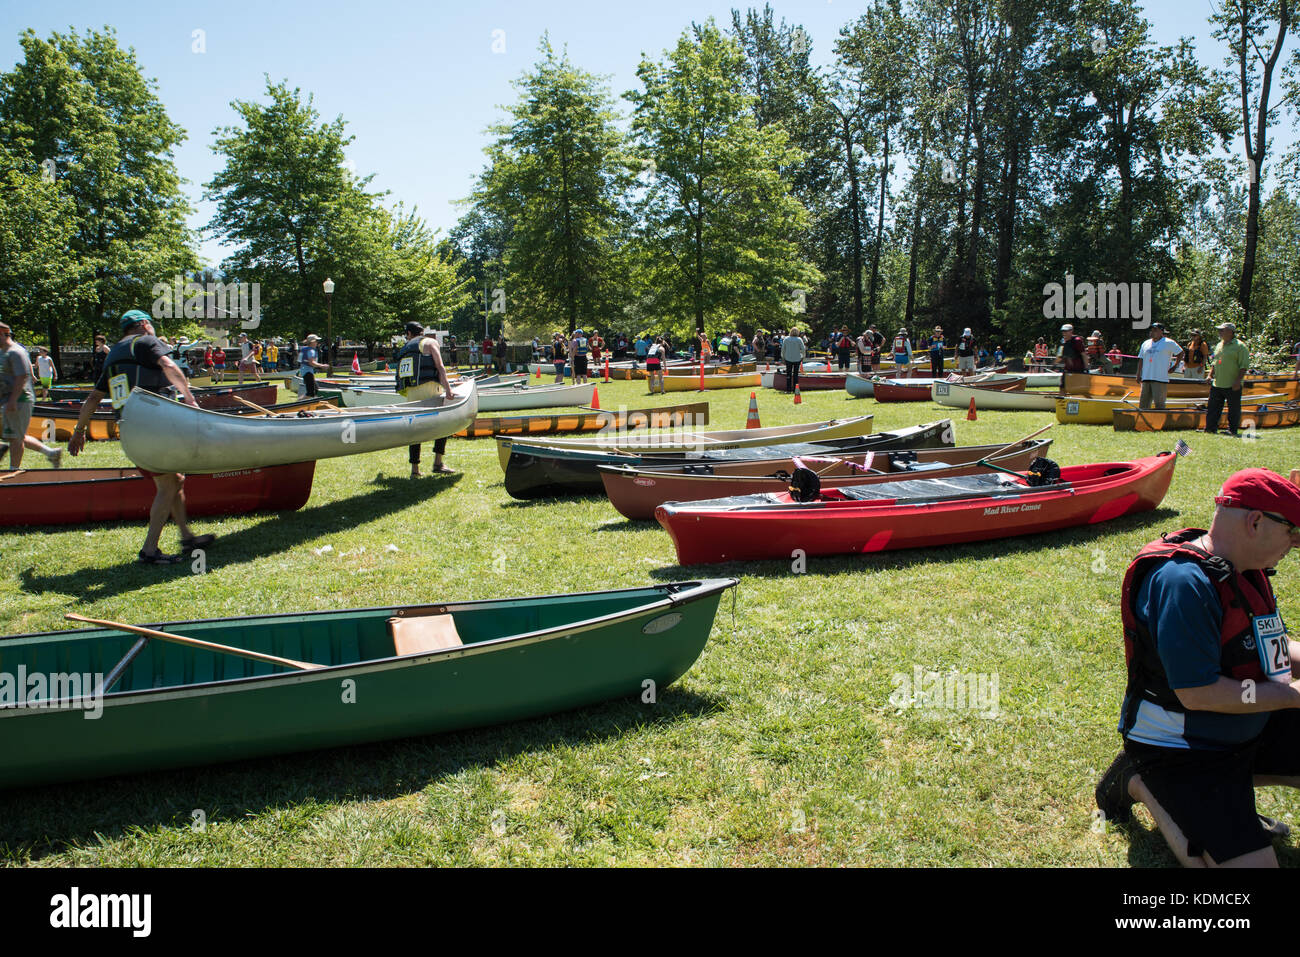 Green Canoe Red Canoe - The annual Memorial Day Ski to Sea race includes cross-country skiing, downhill skiing, - Stock Image